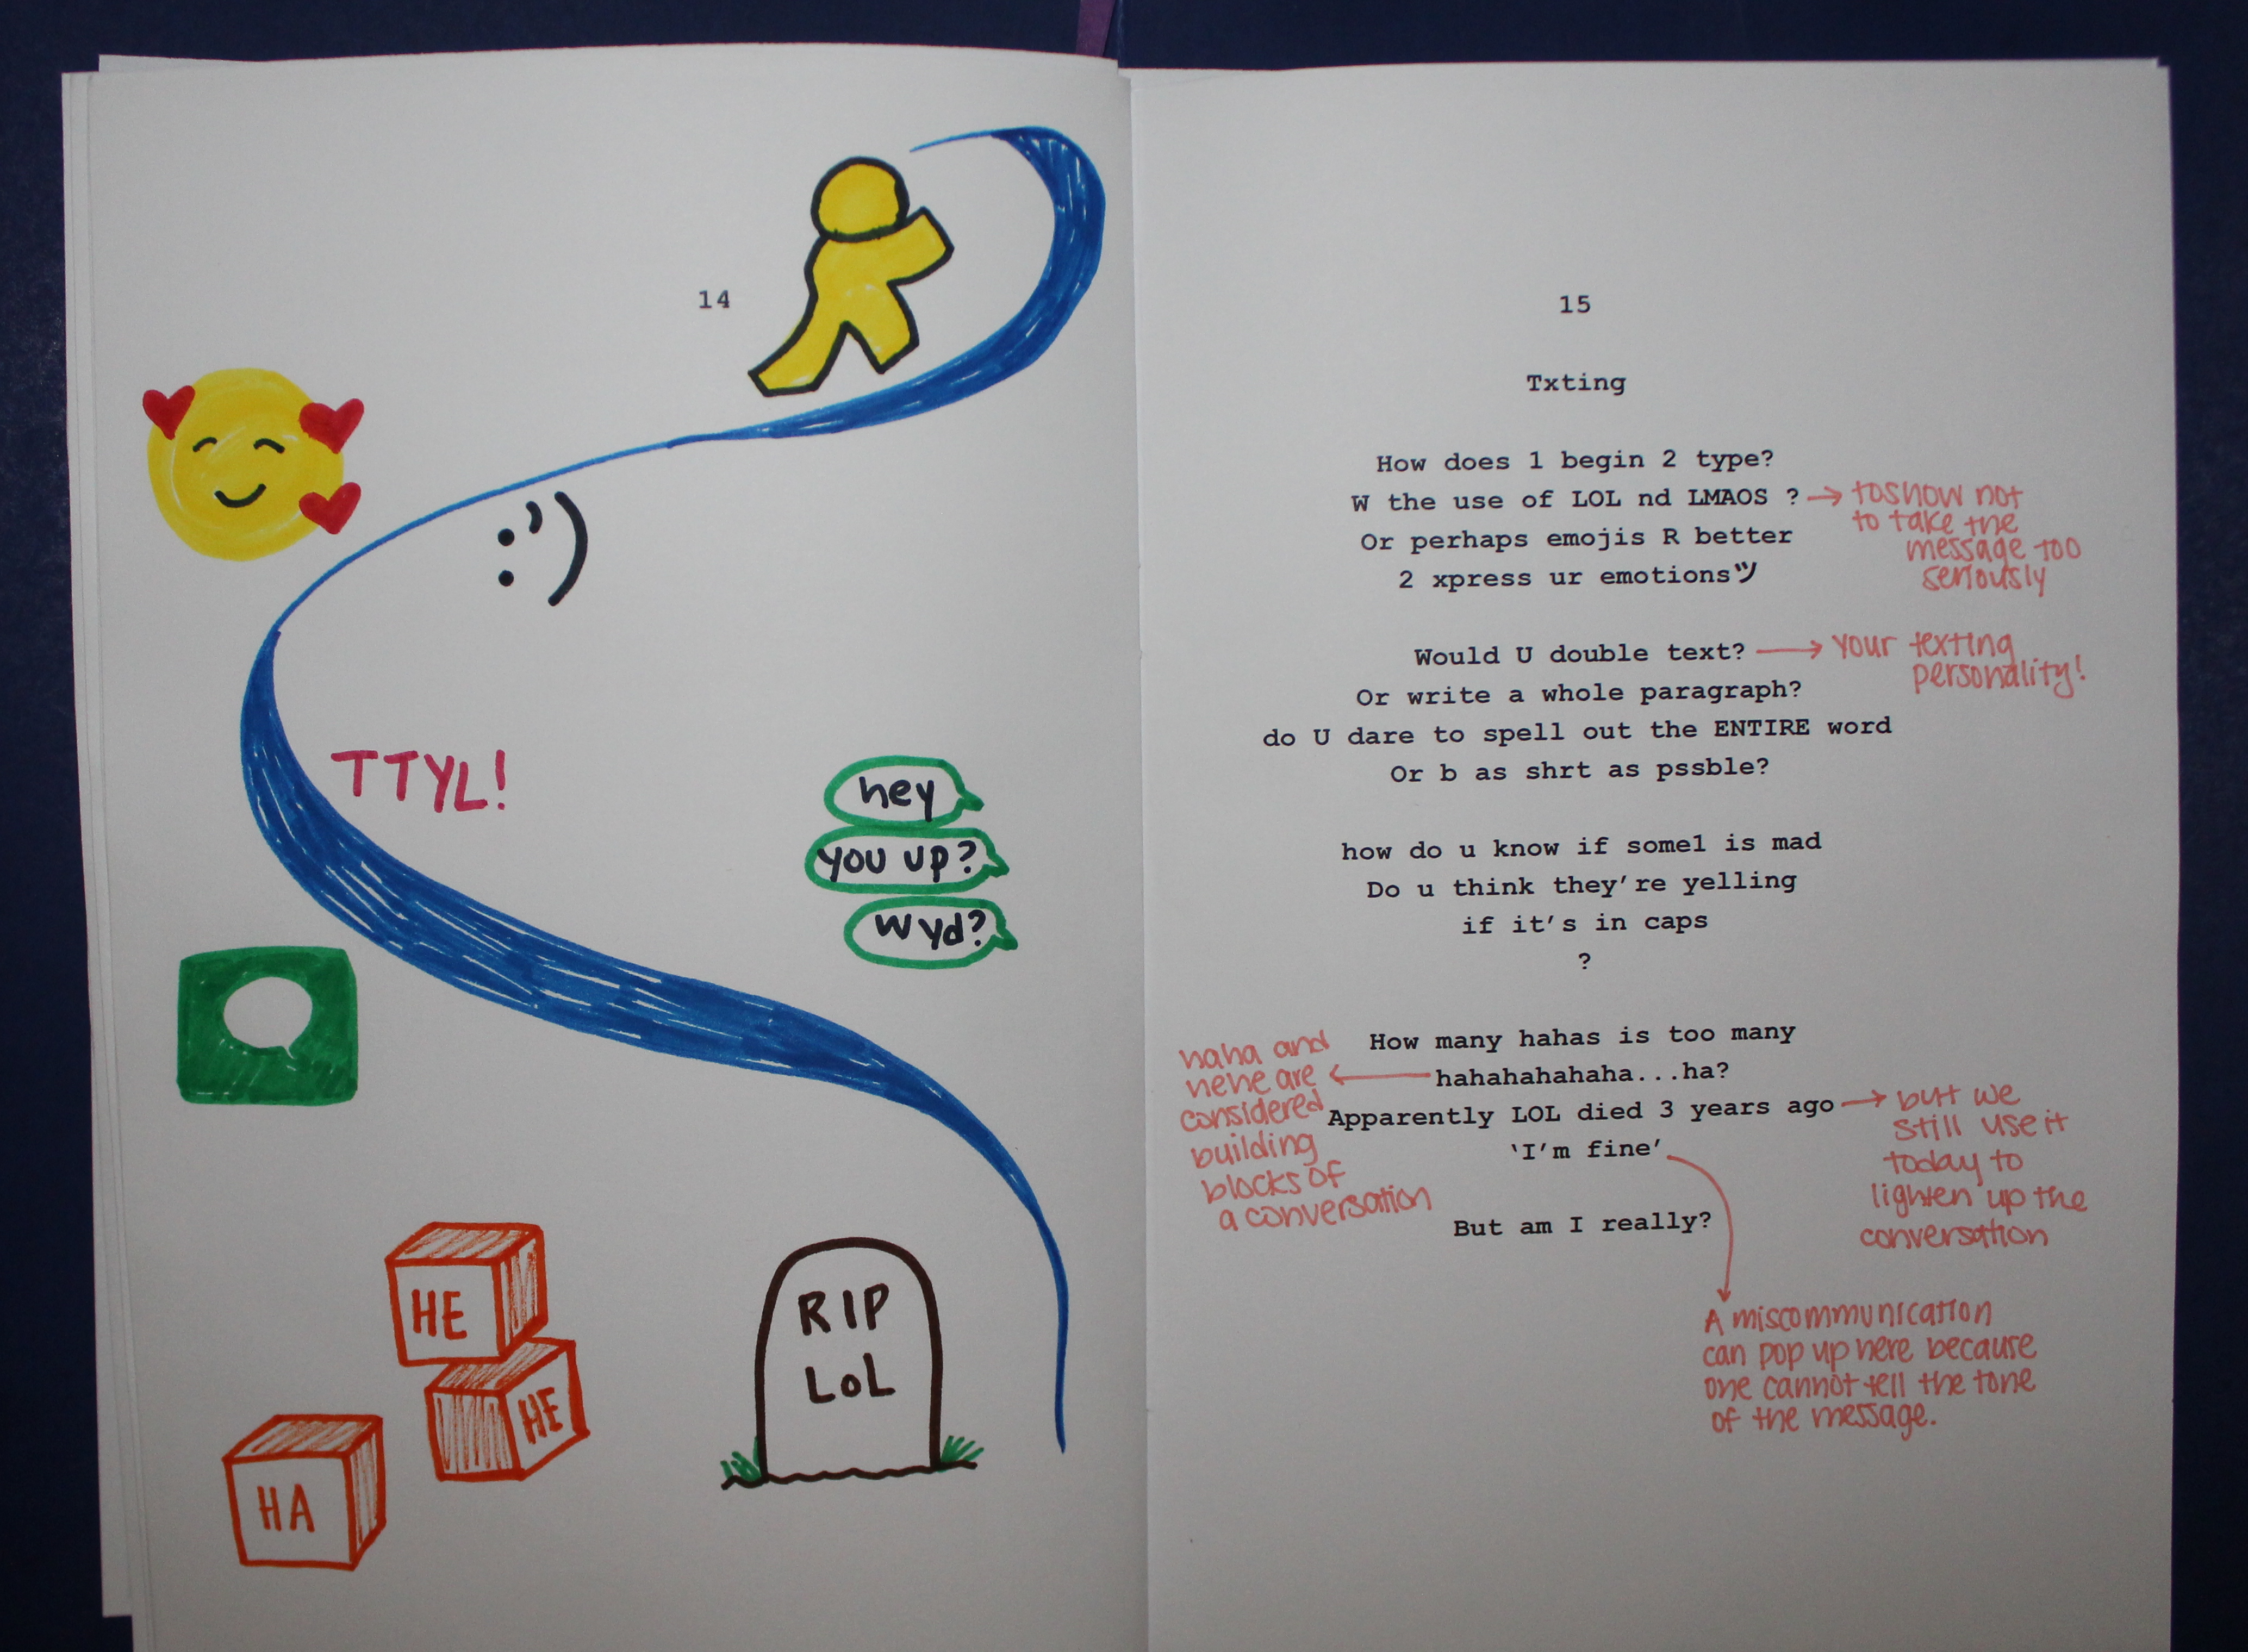 Page9: Original poem about text messaging behaviors accompanied by an illustration